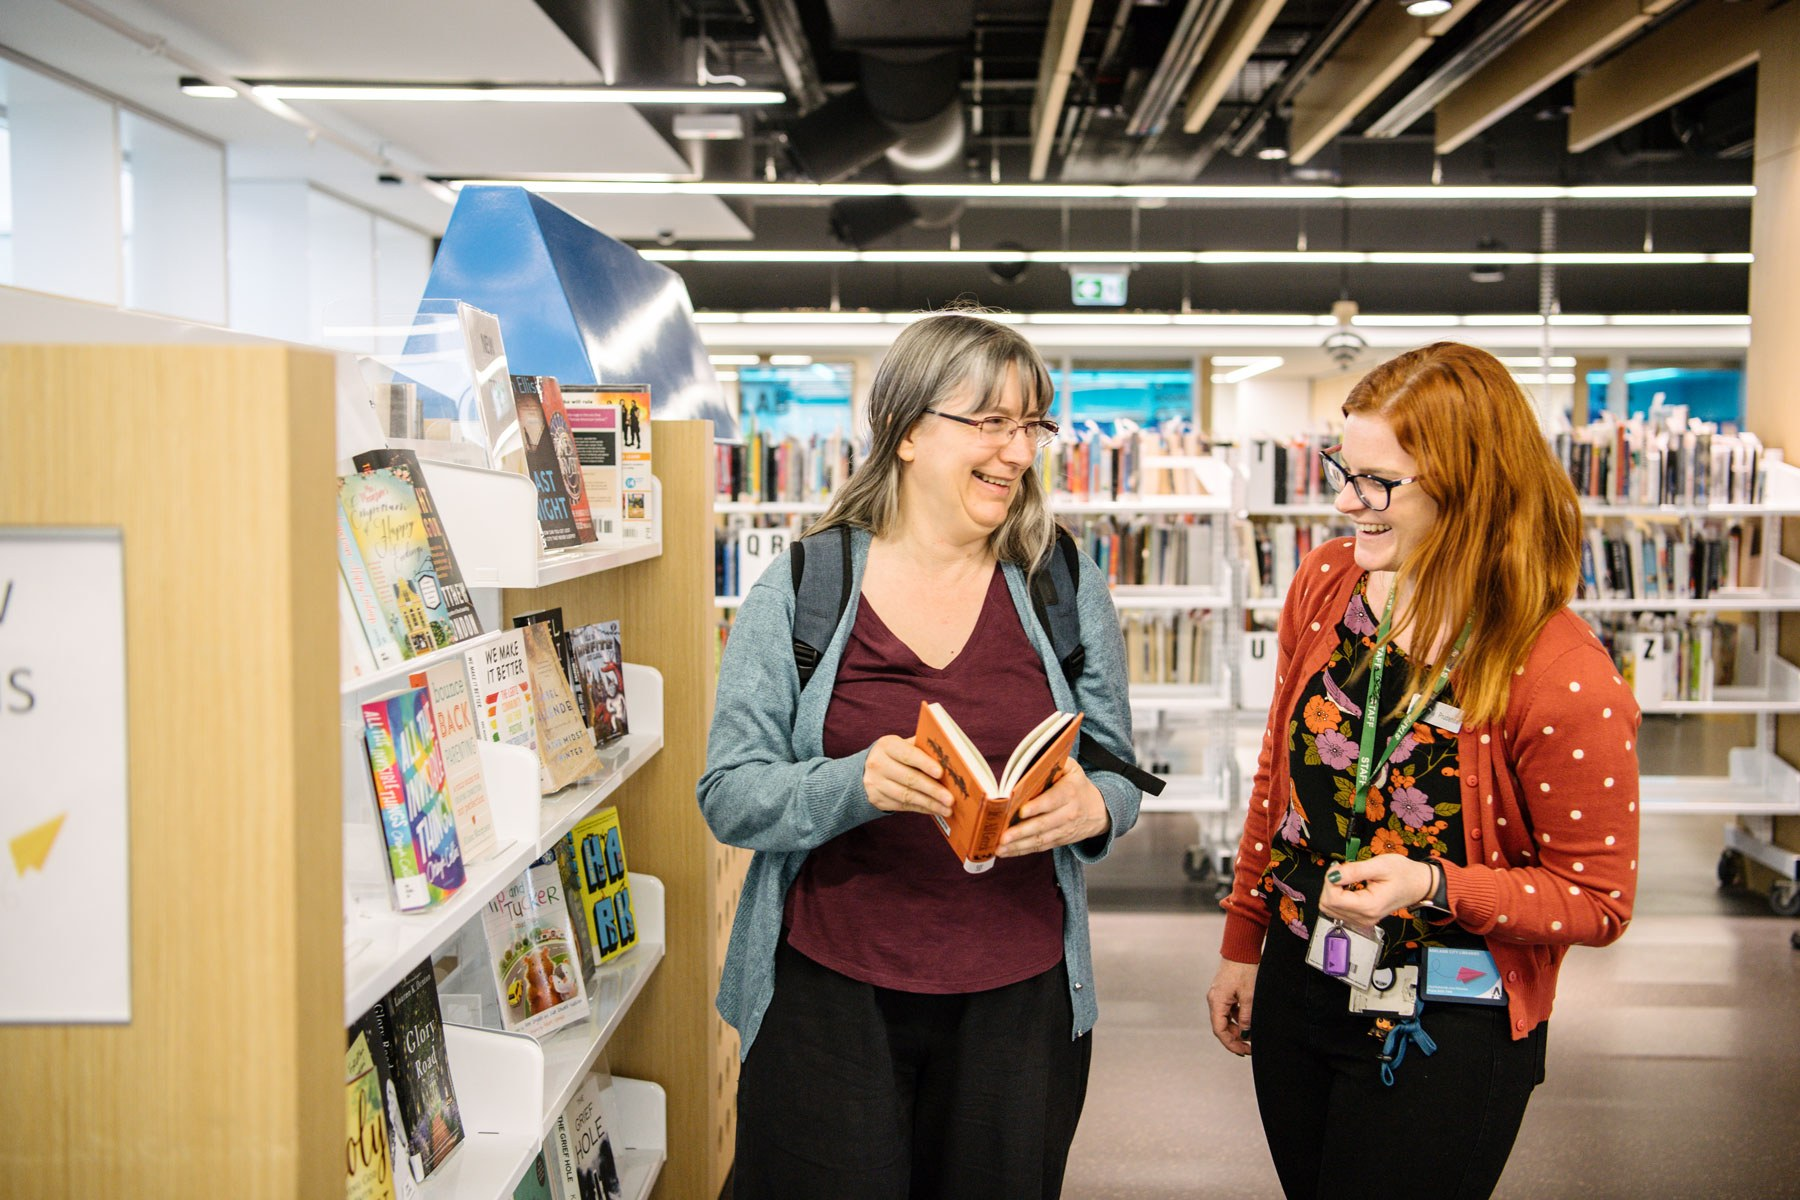 City library user frances with staff member